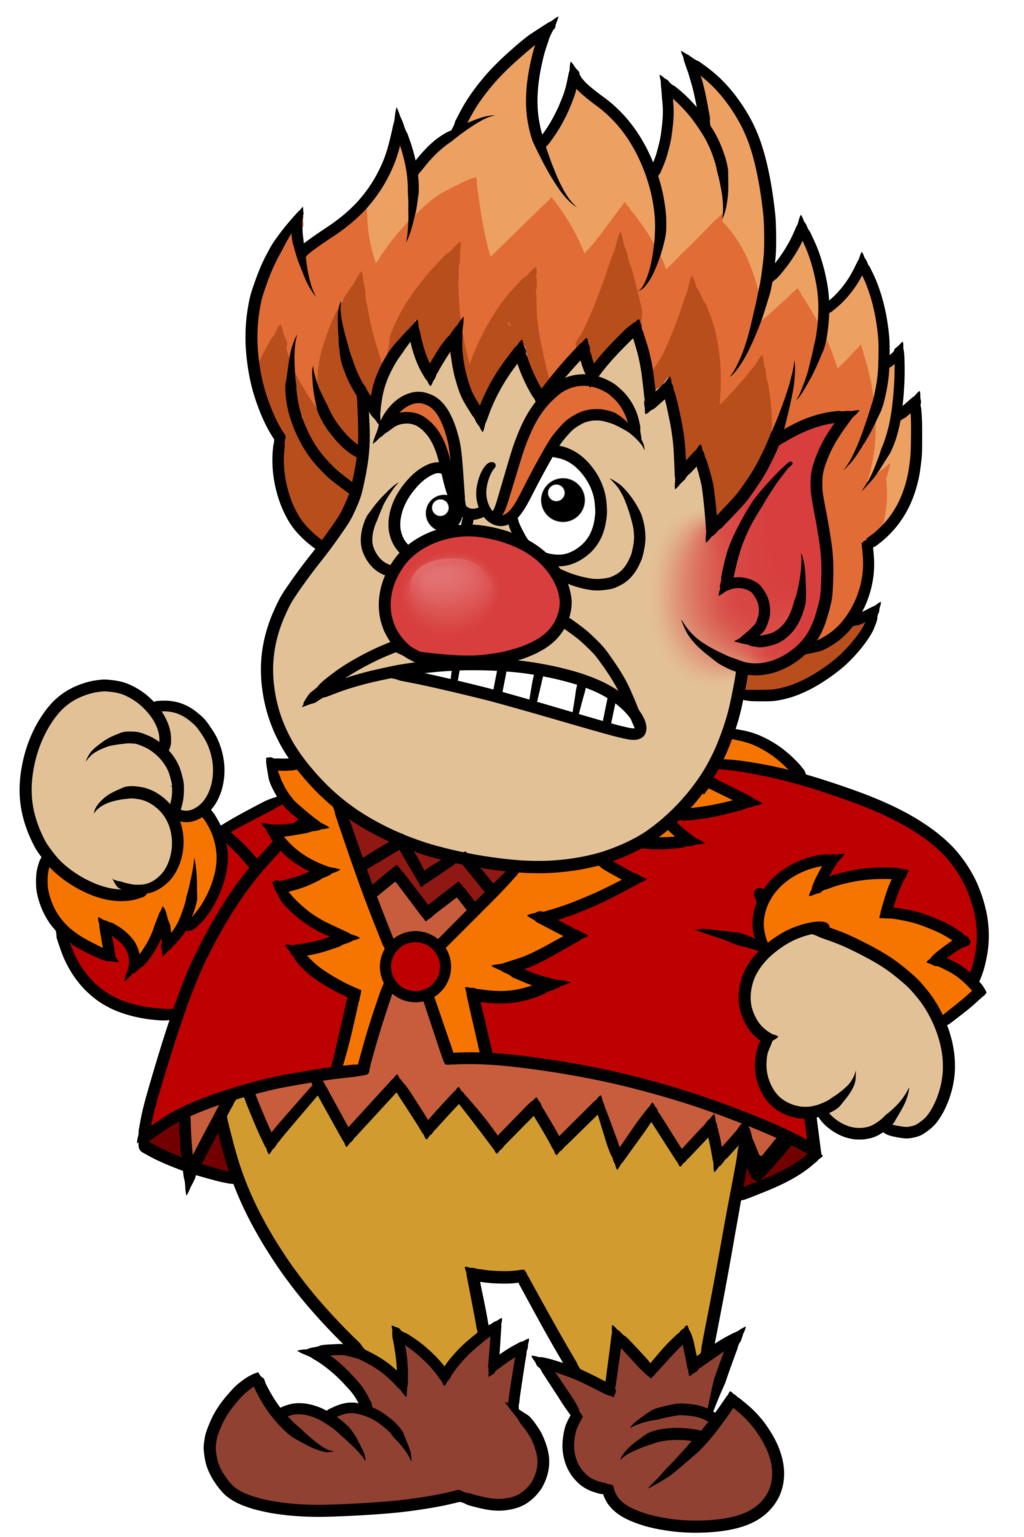 Heat clipart cartoon. Miser by cosmictangent on